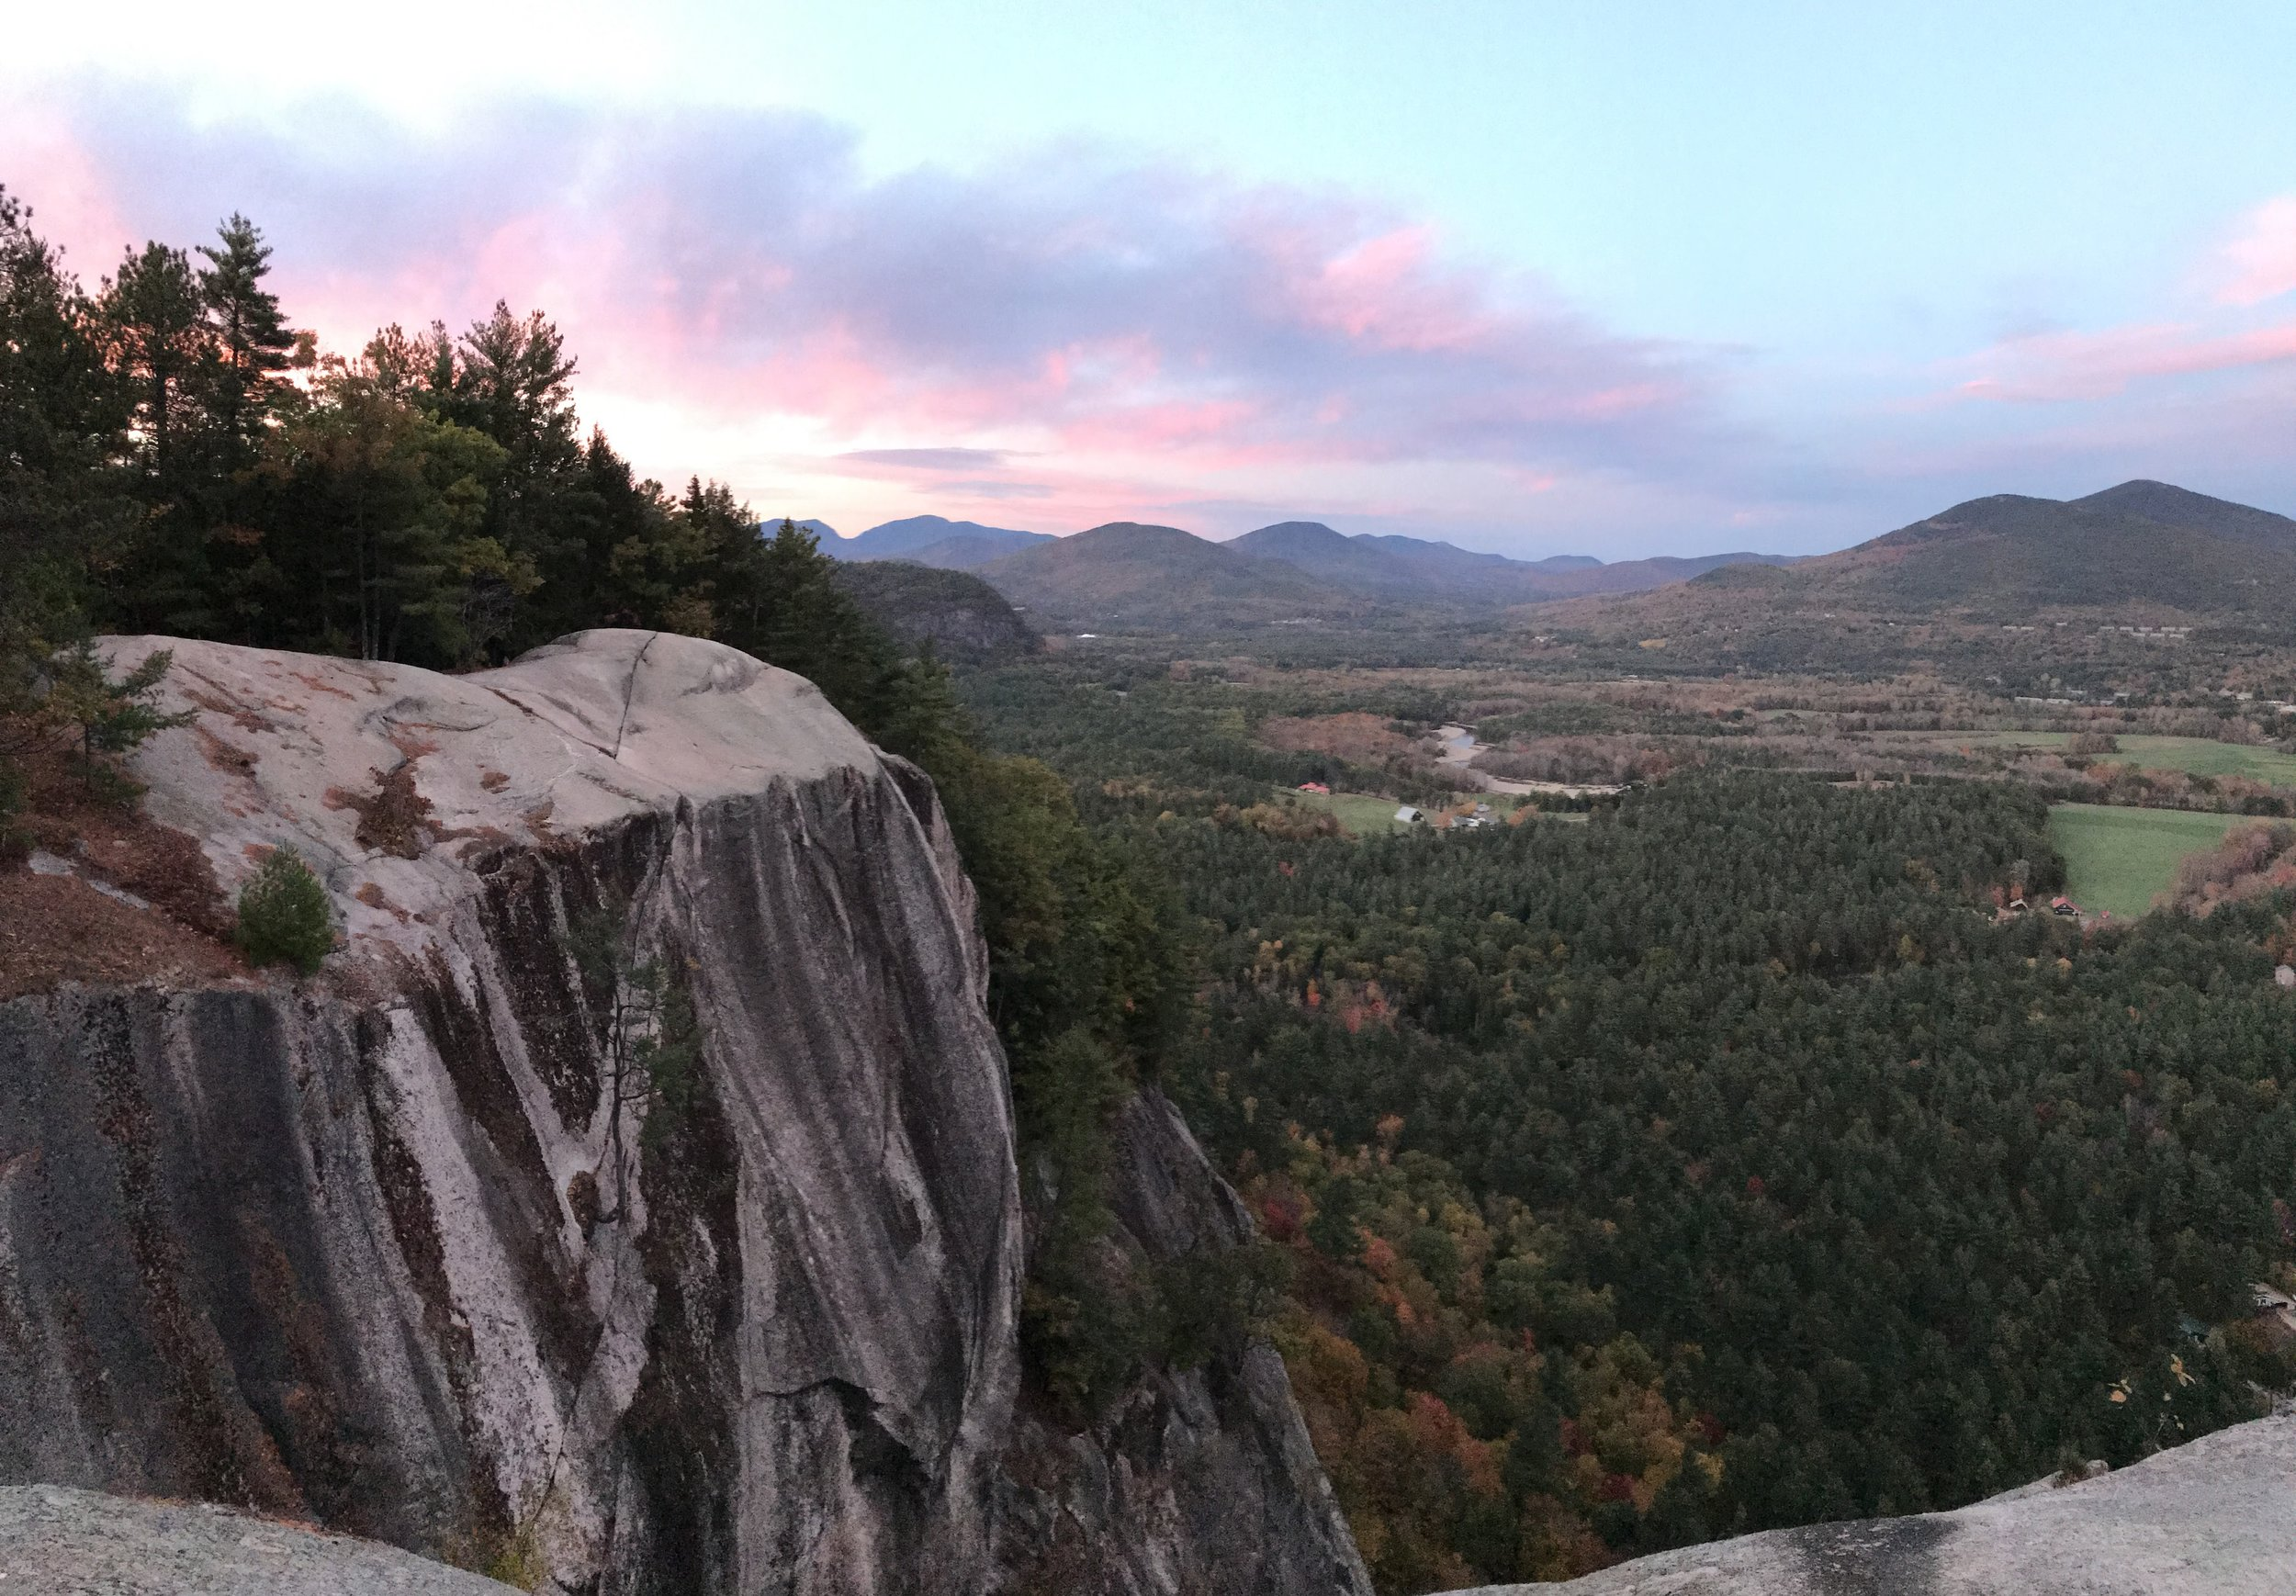 Watching sunrise in New Hampshire was the highlight of my trip. Fall colors last year weren't as good as usual according to locals, so I guess I'll just have to do it all over again soon. Yay!